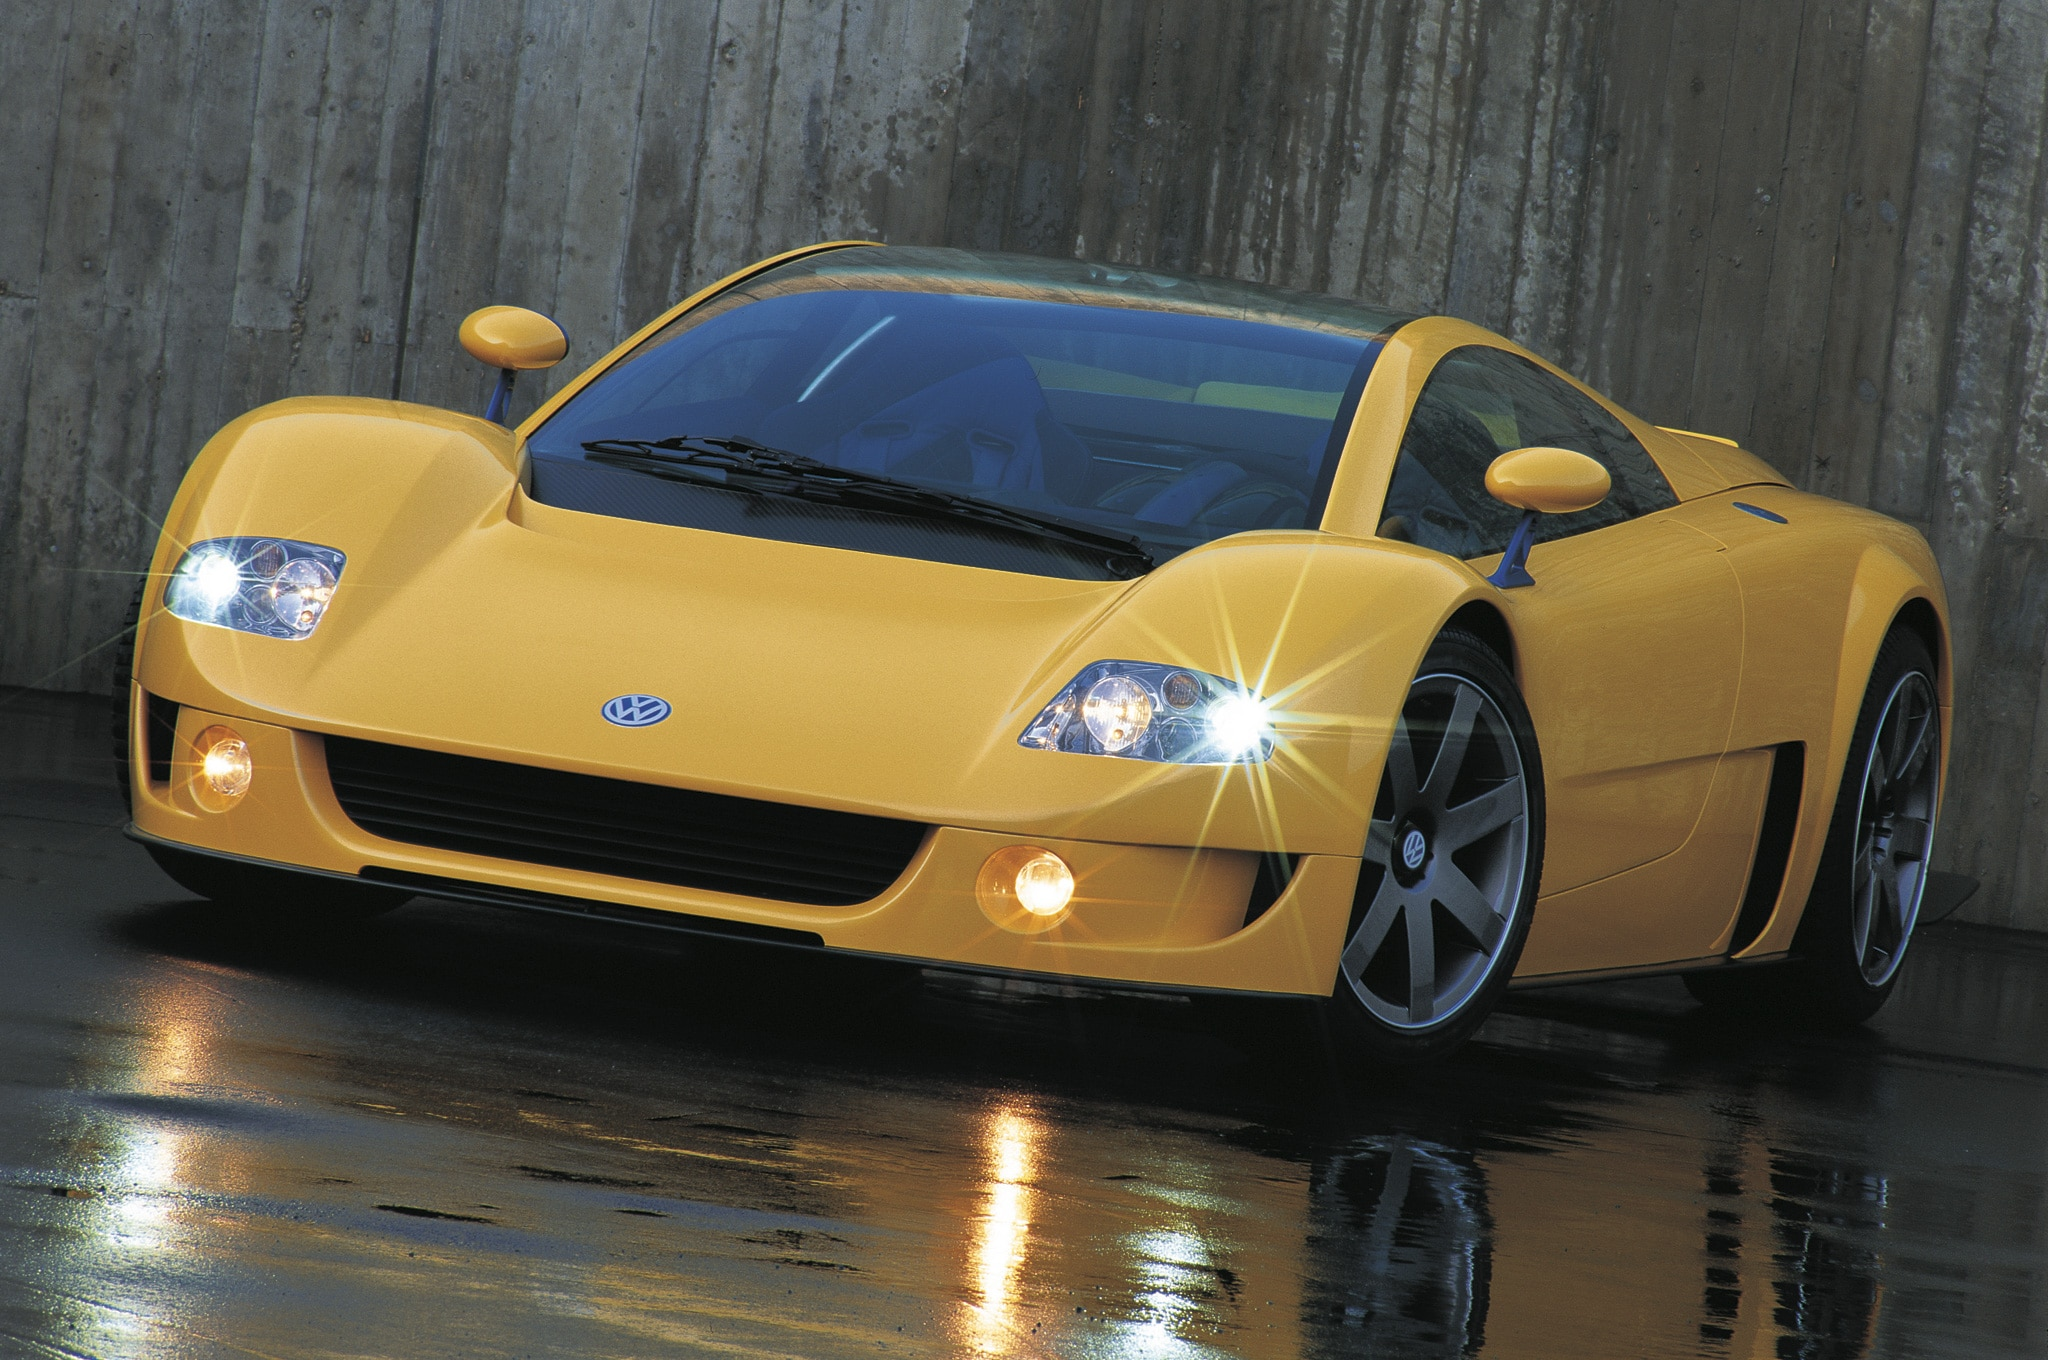 Five Coolest Cars Powered By Volkswagen W-12 Engines - Automobile